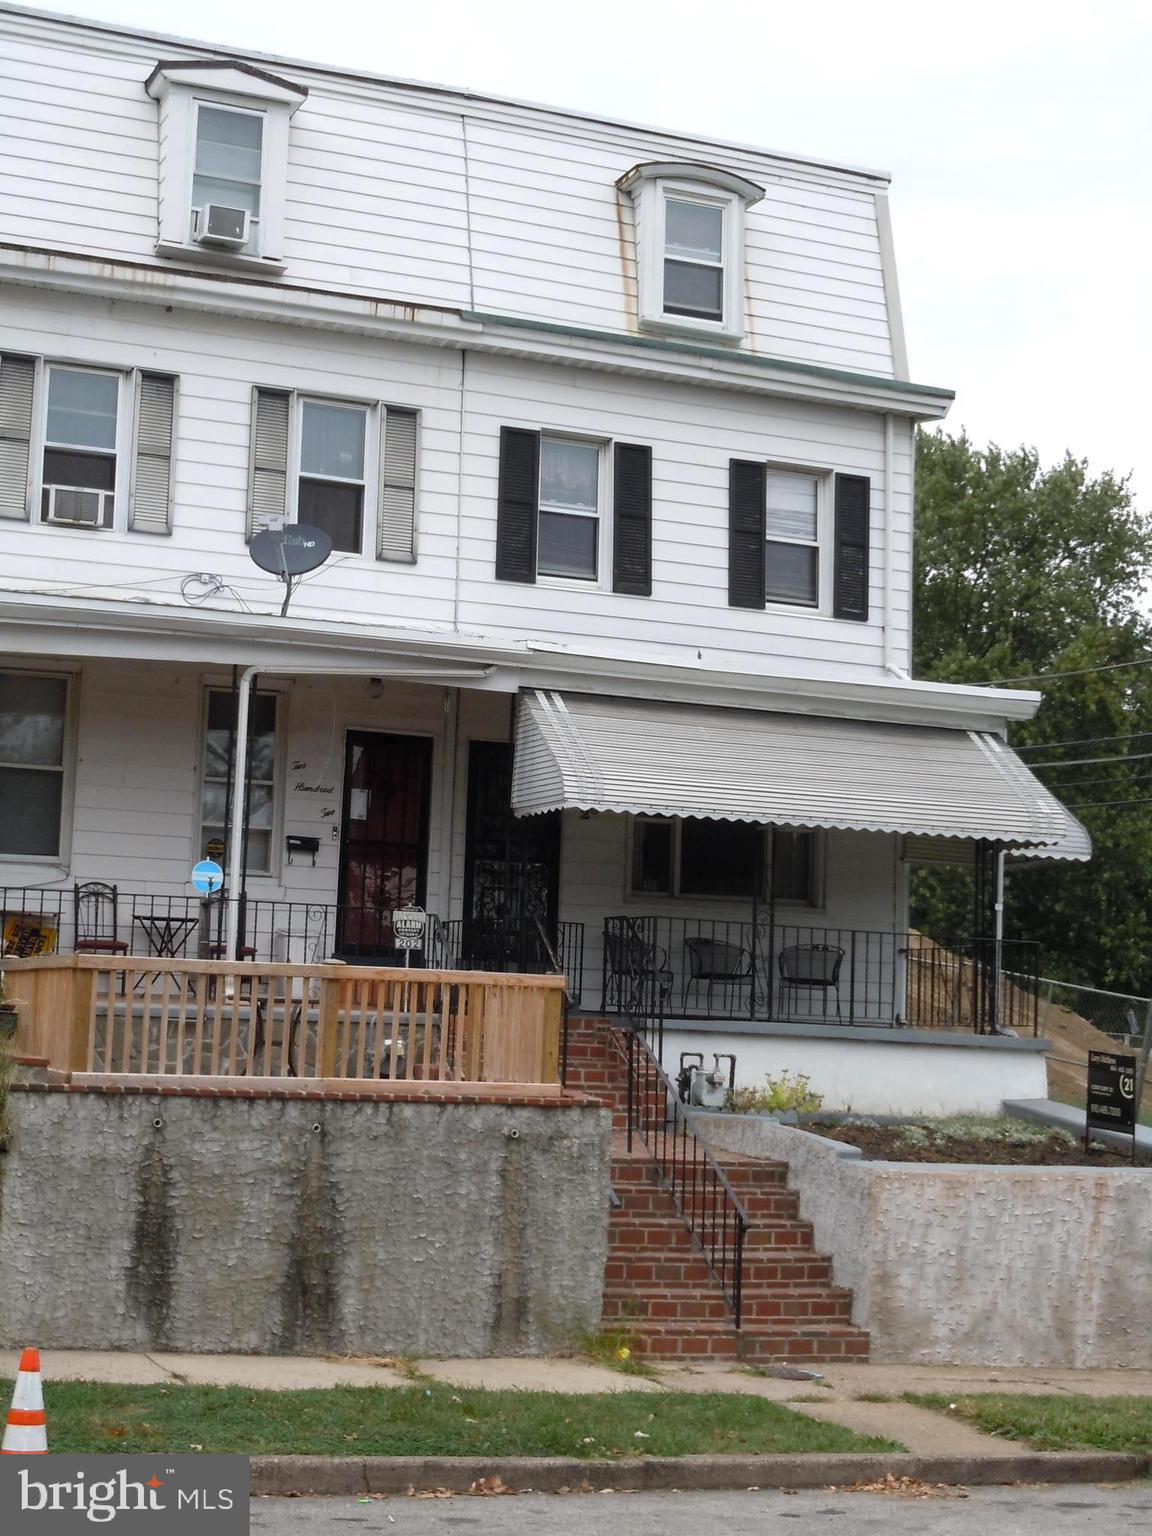 200 W 15TH STREET, CHESTER, PA 19013